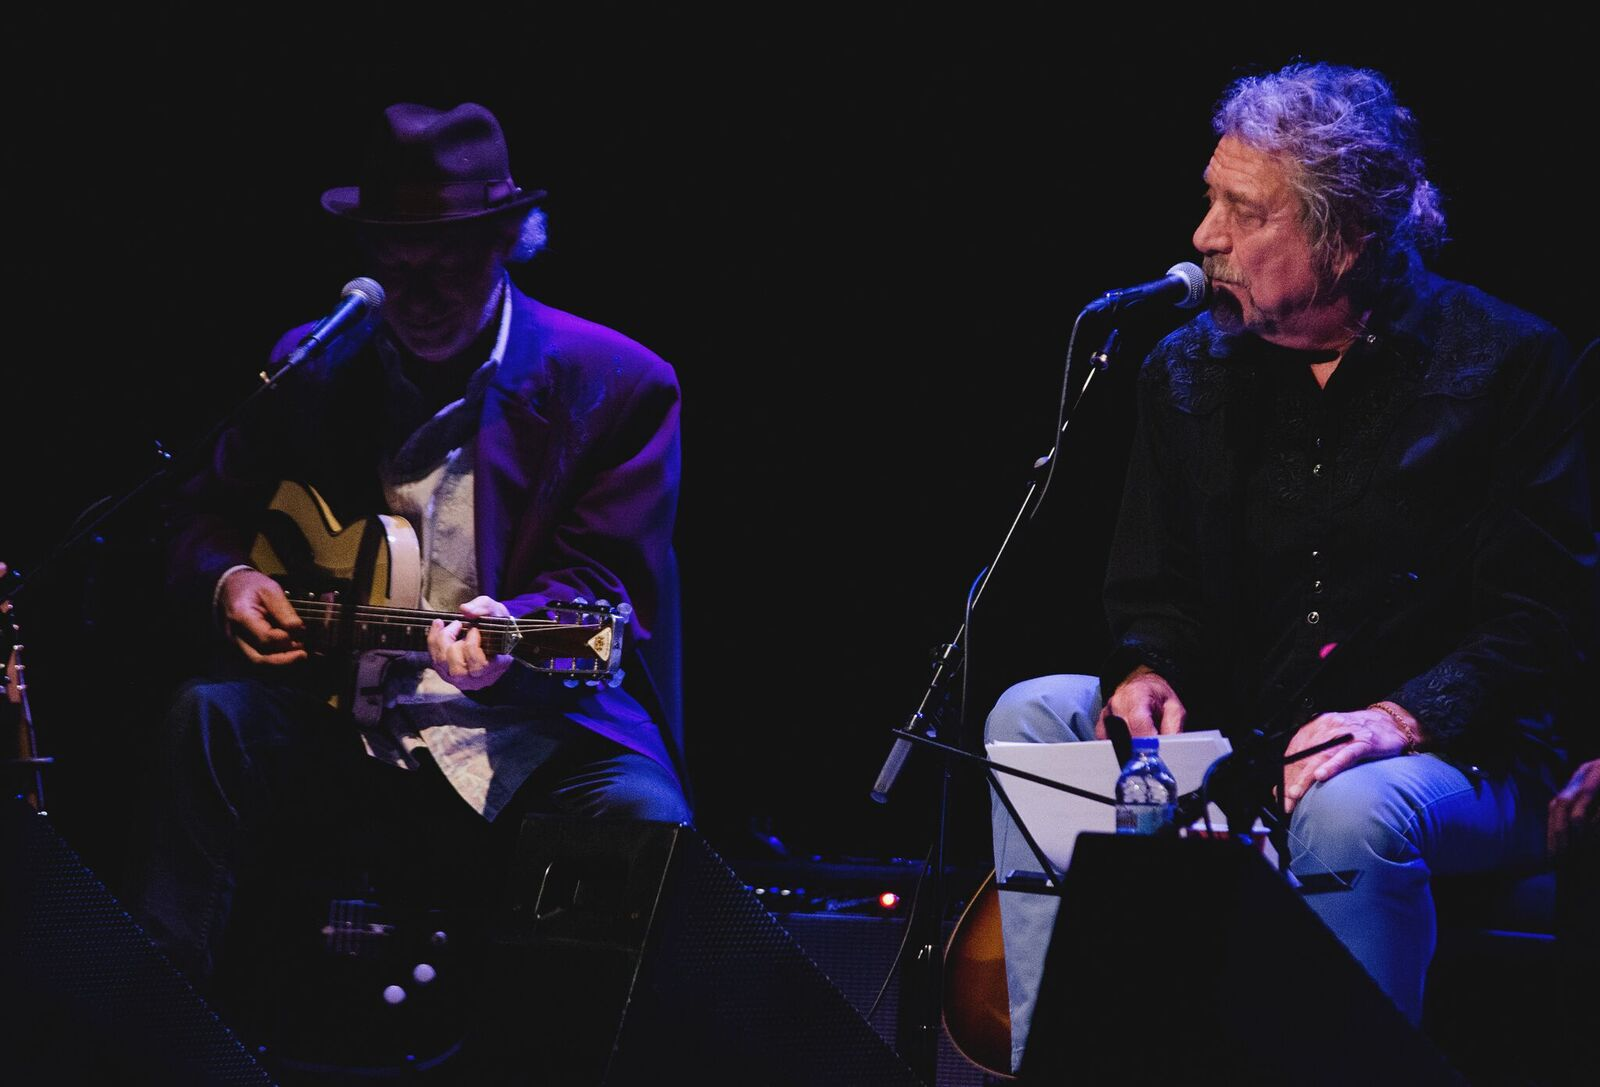 Buddy Miller and Robert Plant (Photo by Jesse Lee, Marquette University)